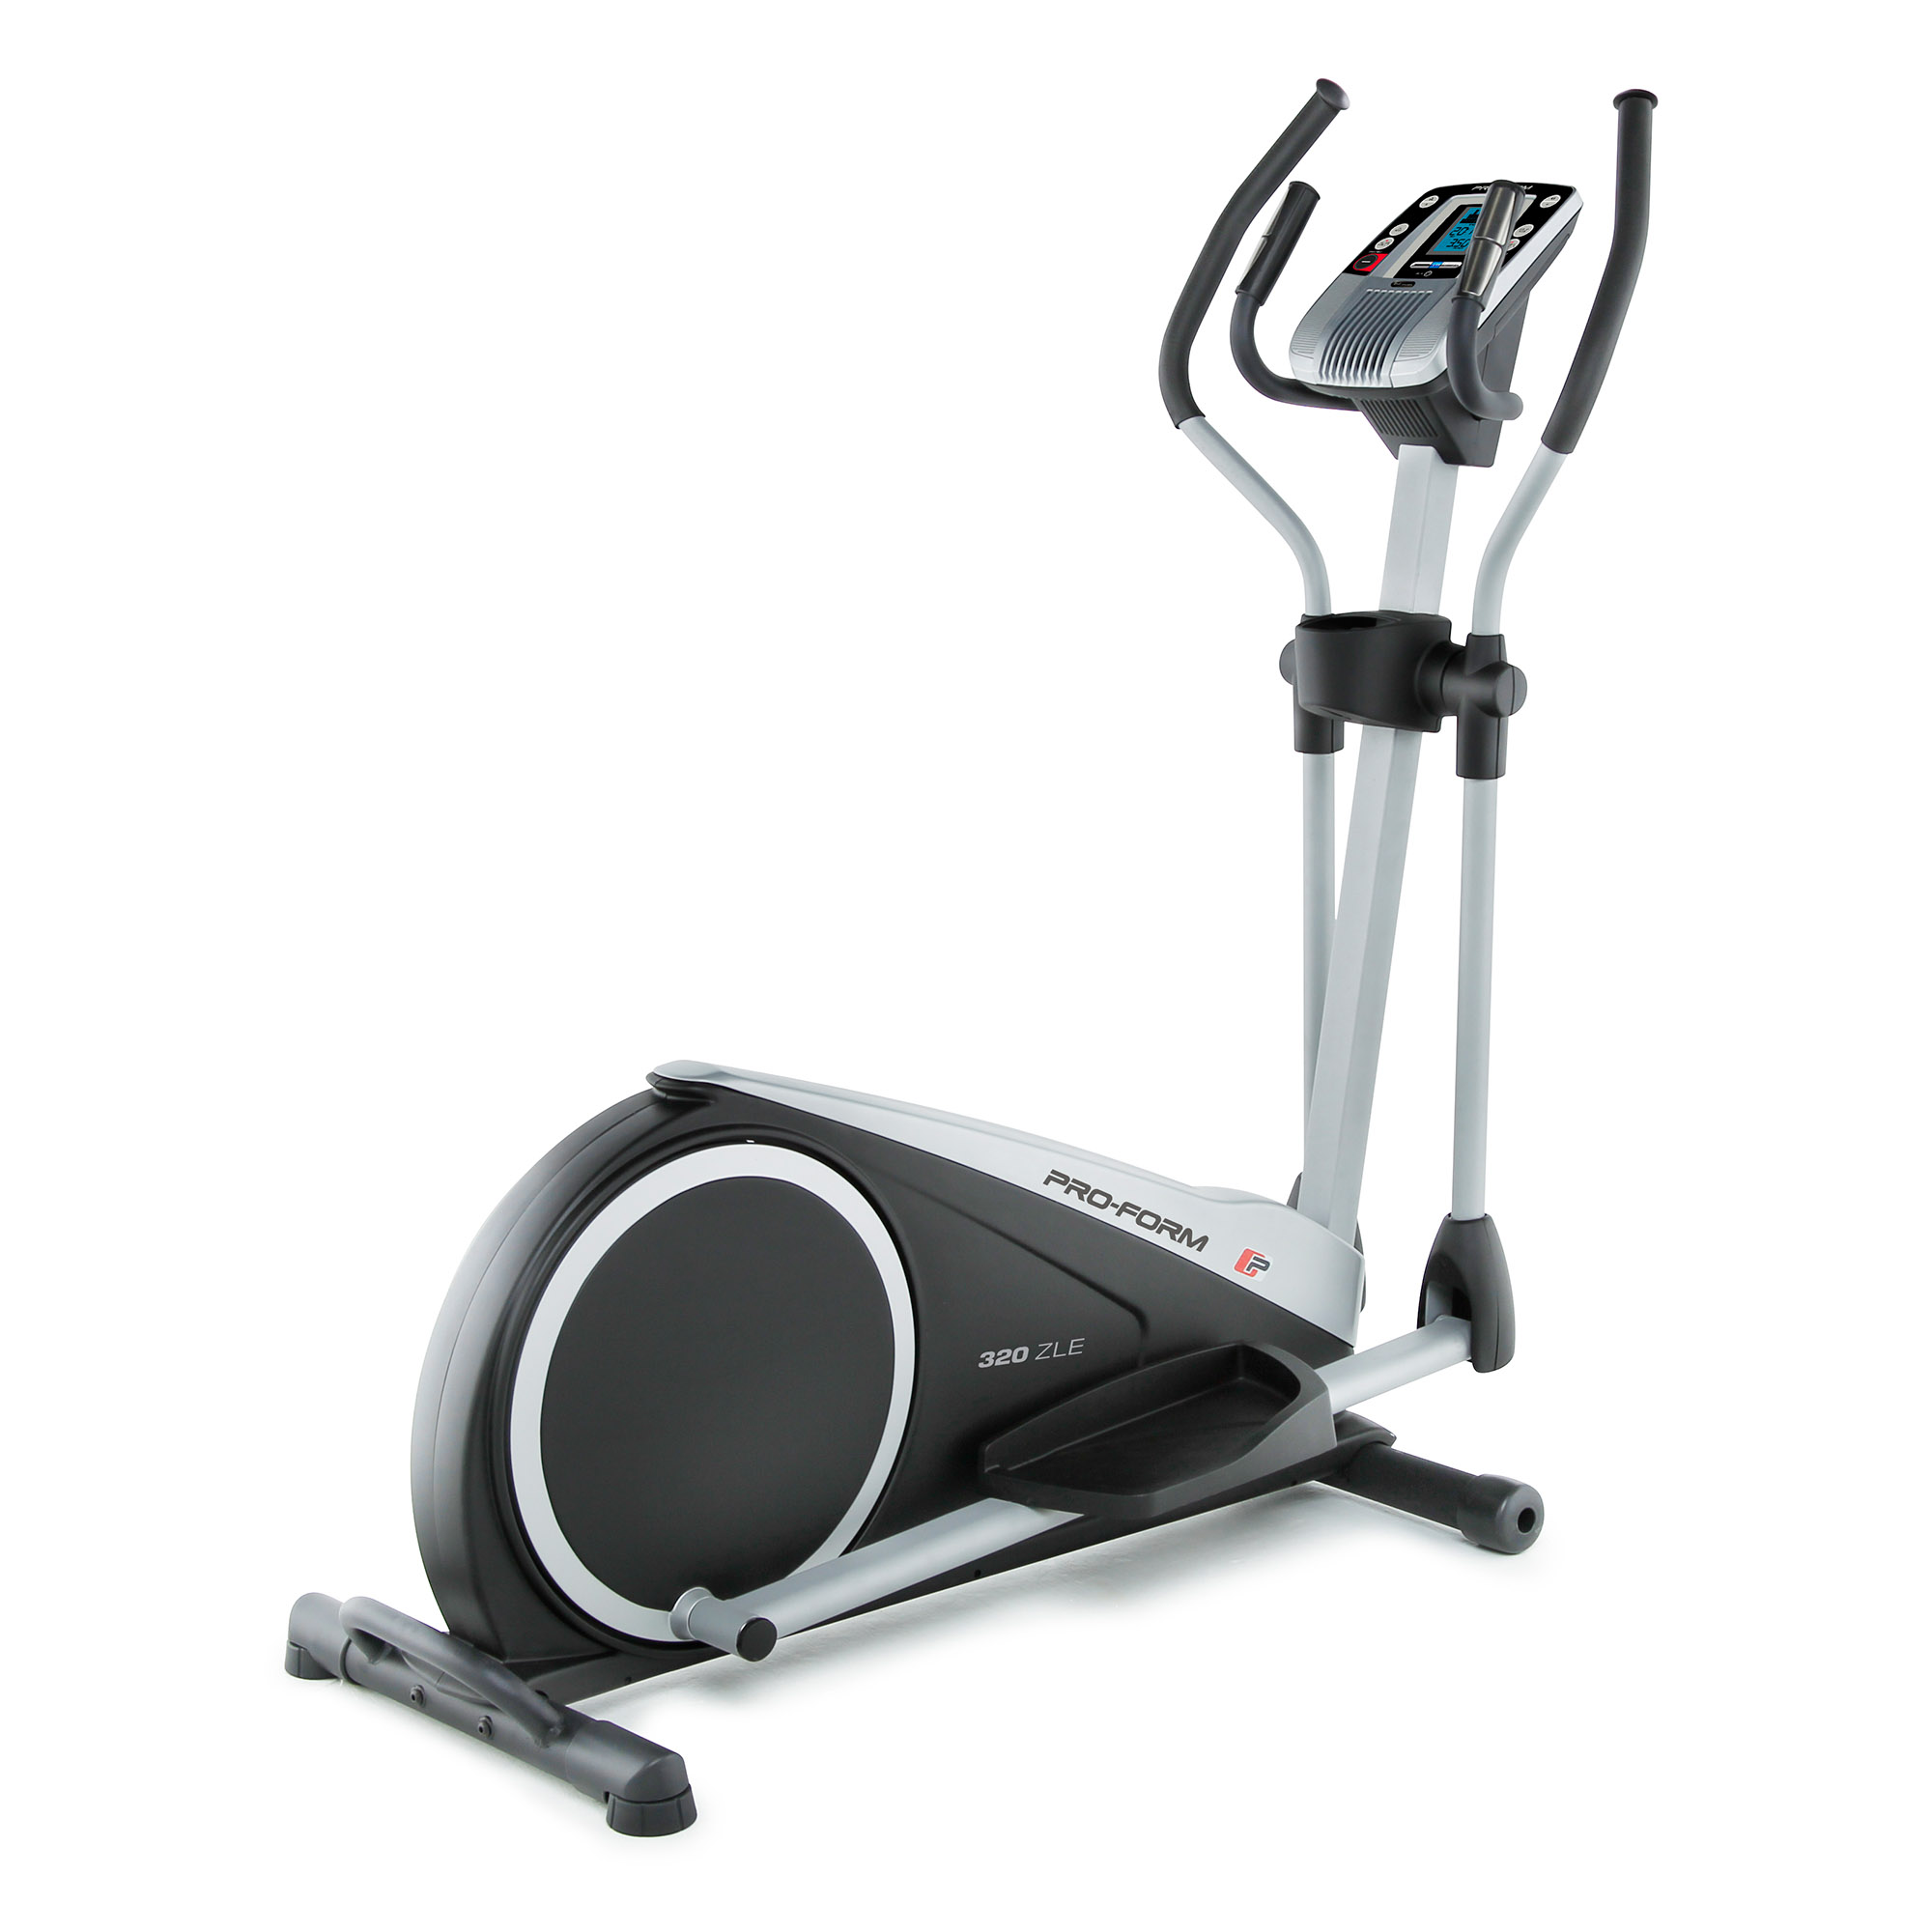 lifespan x17 cross trainer review